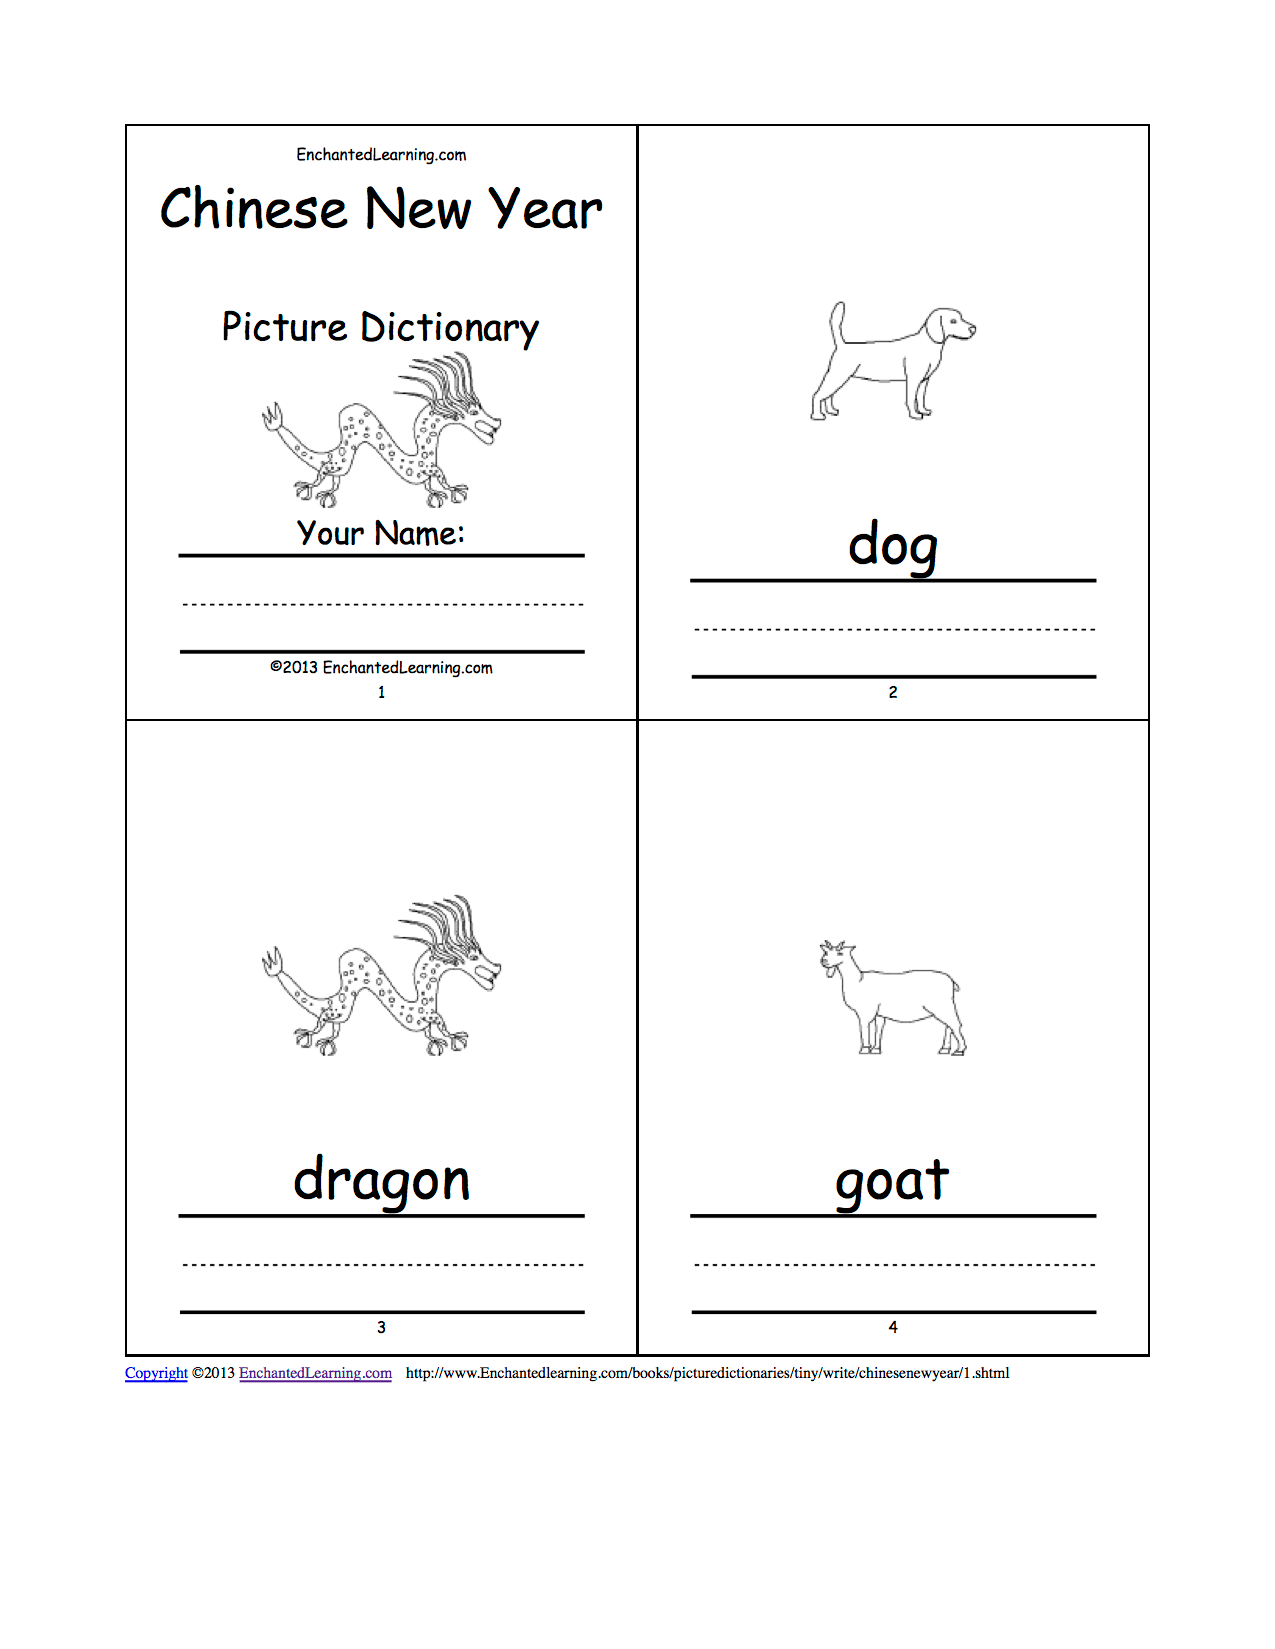 Chinese New Year Picture Dictionary